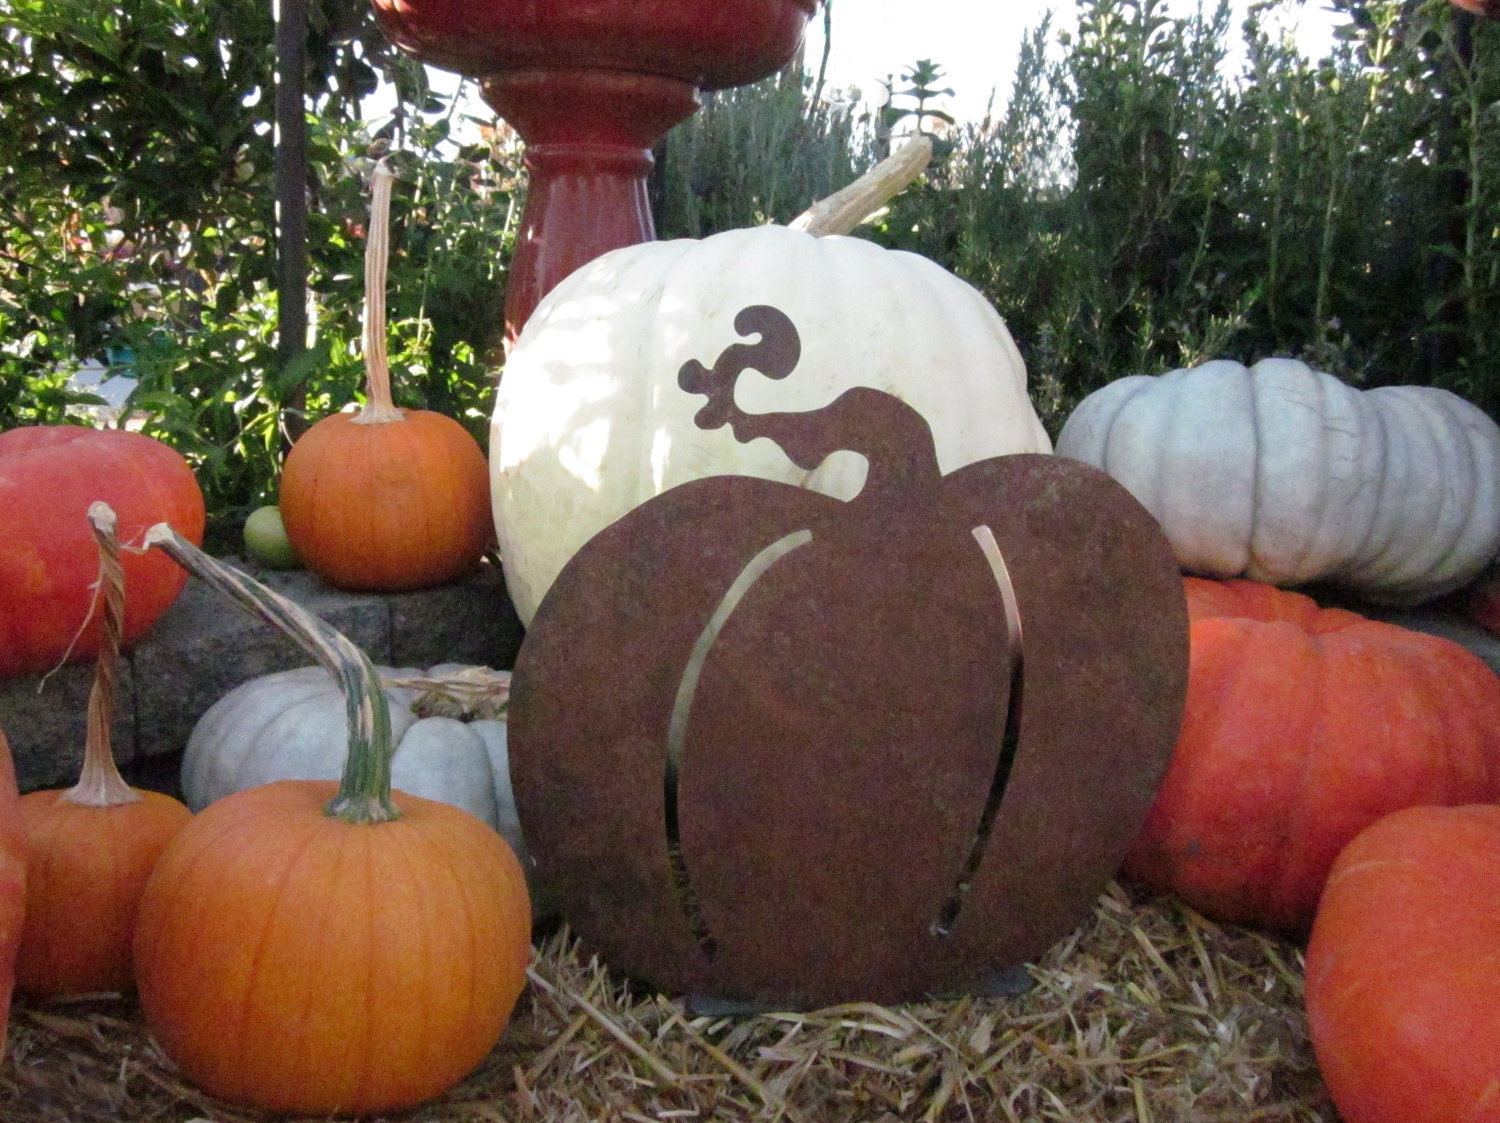 Harvest Table Pumpkin - Rusty Metal Sculpture